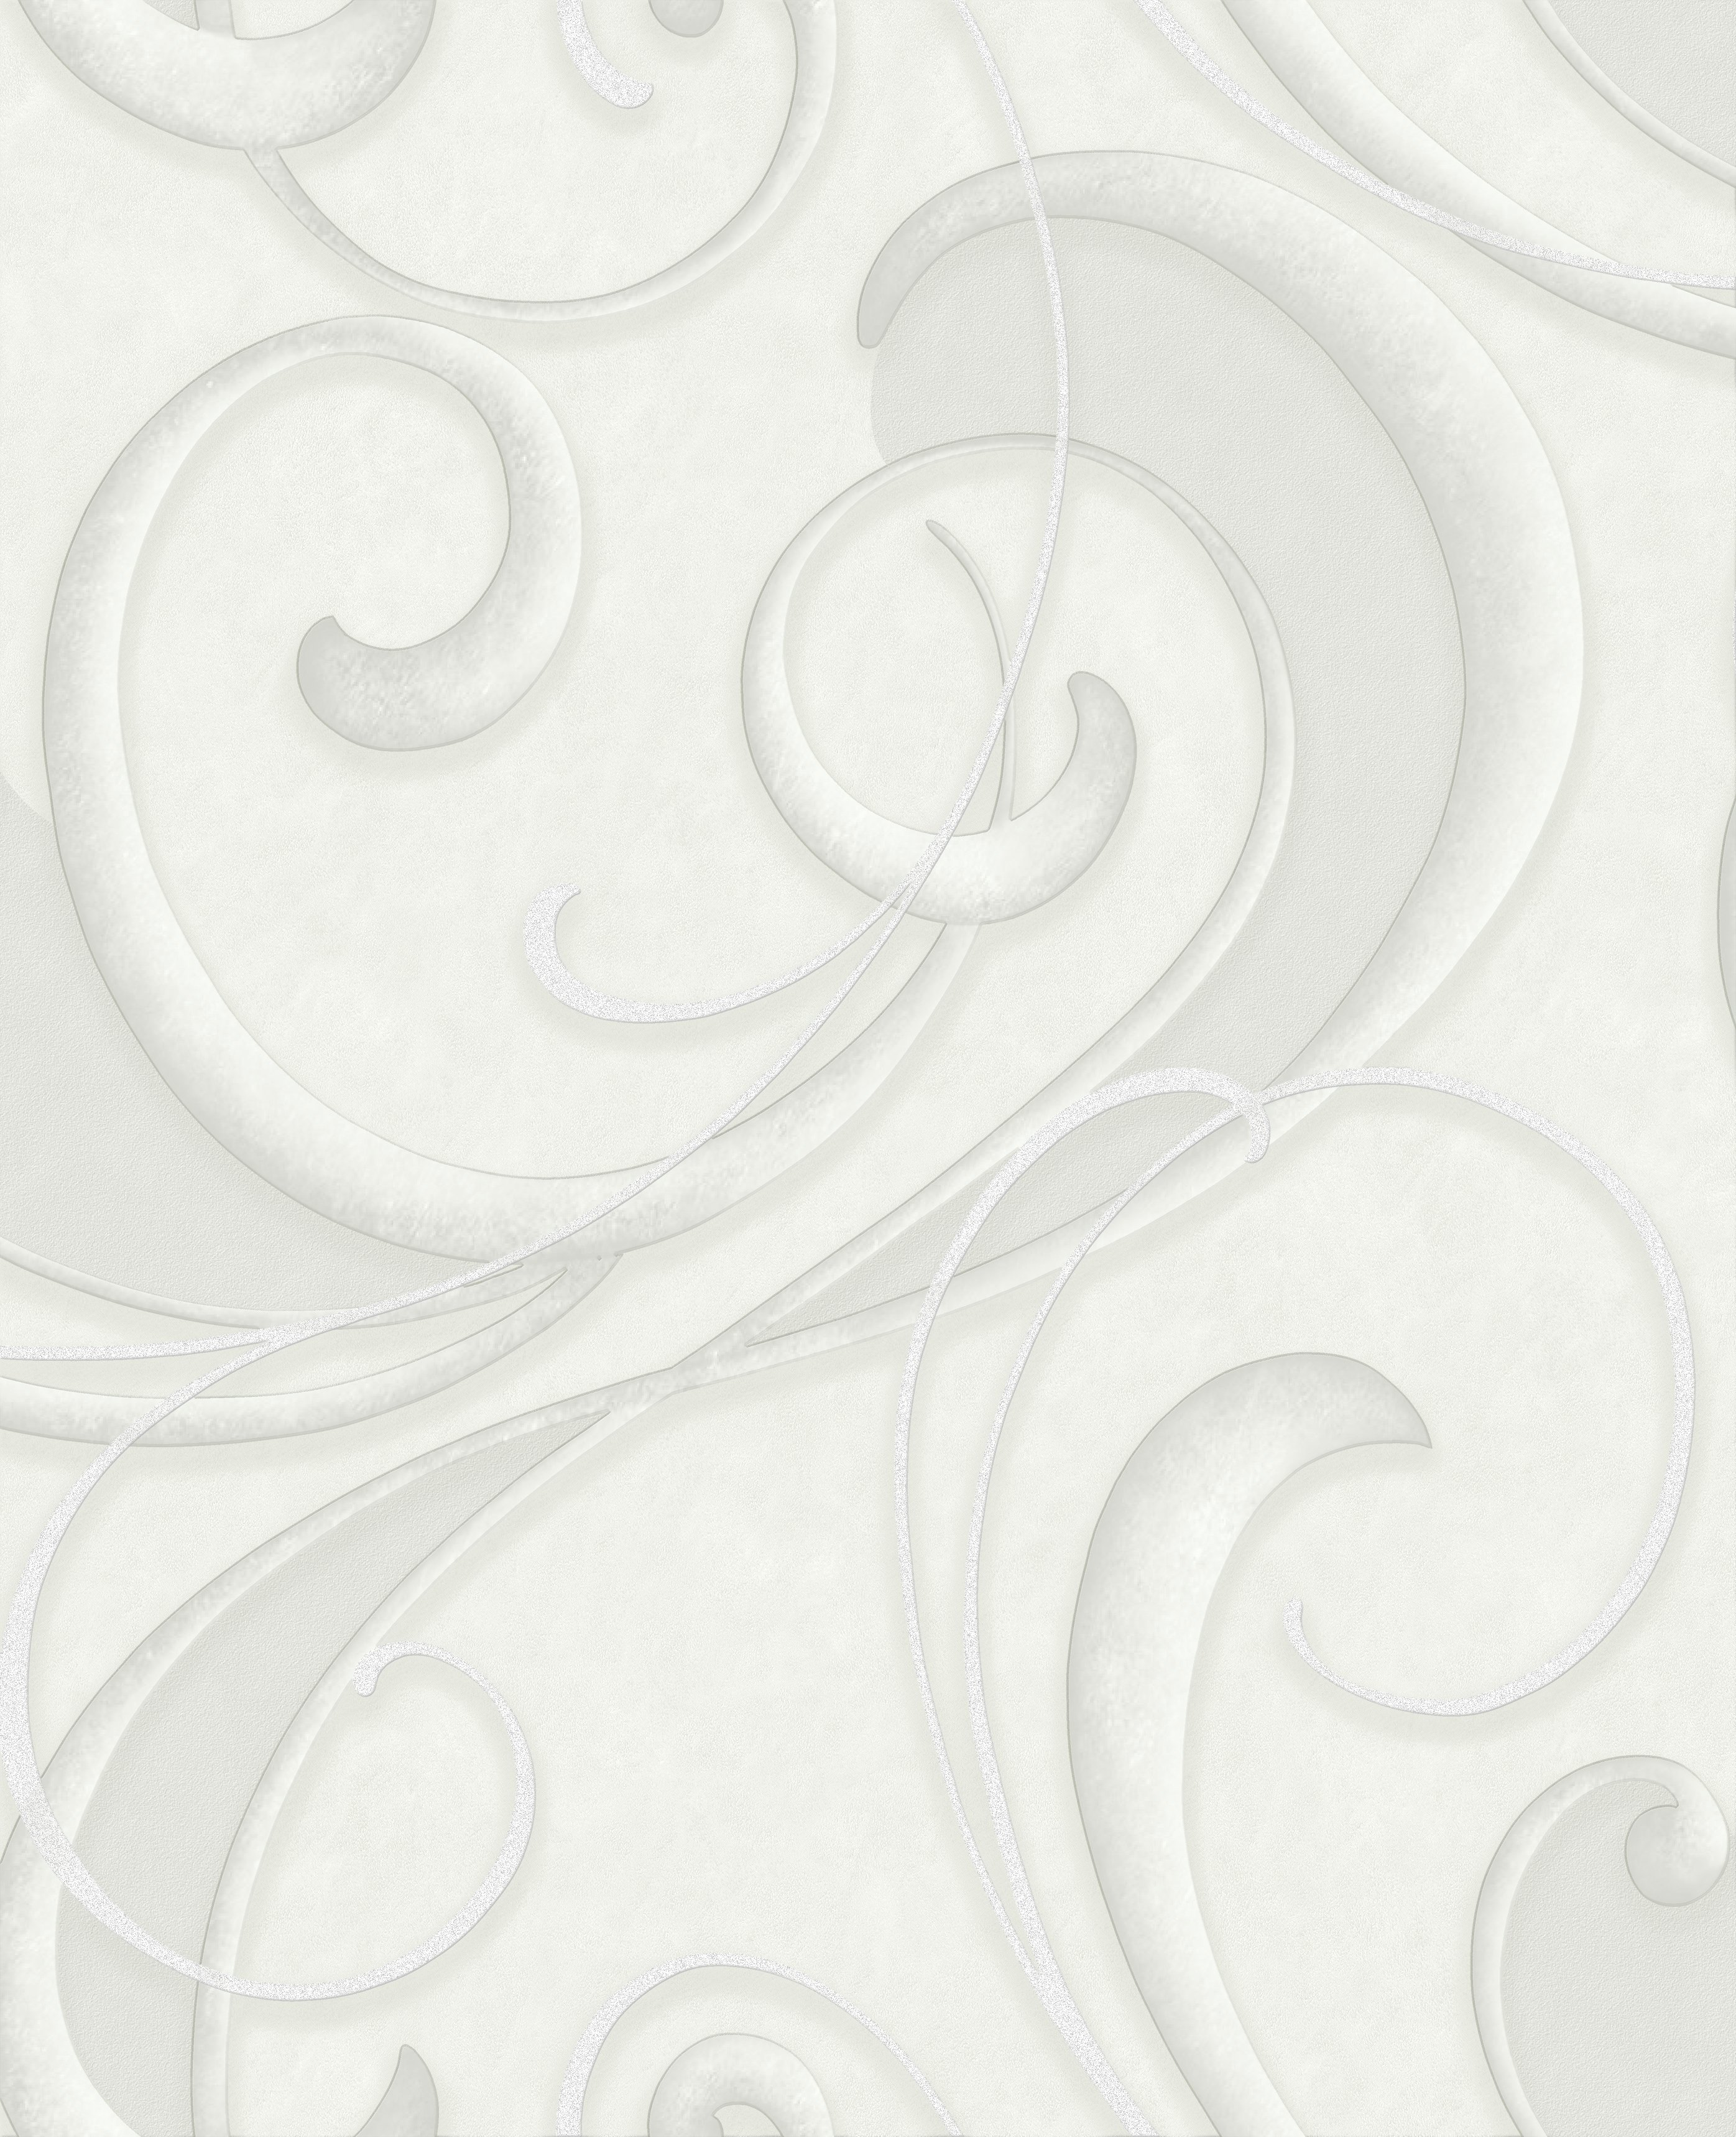 Image of Graham & Brown Flamenco Wallpaper - White & Silver.